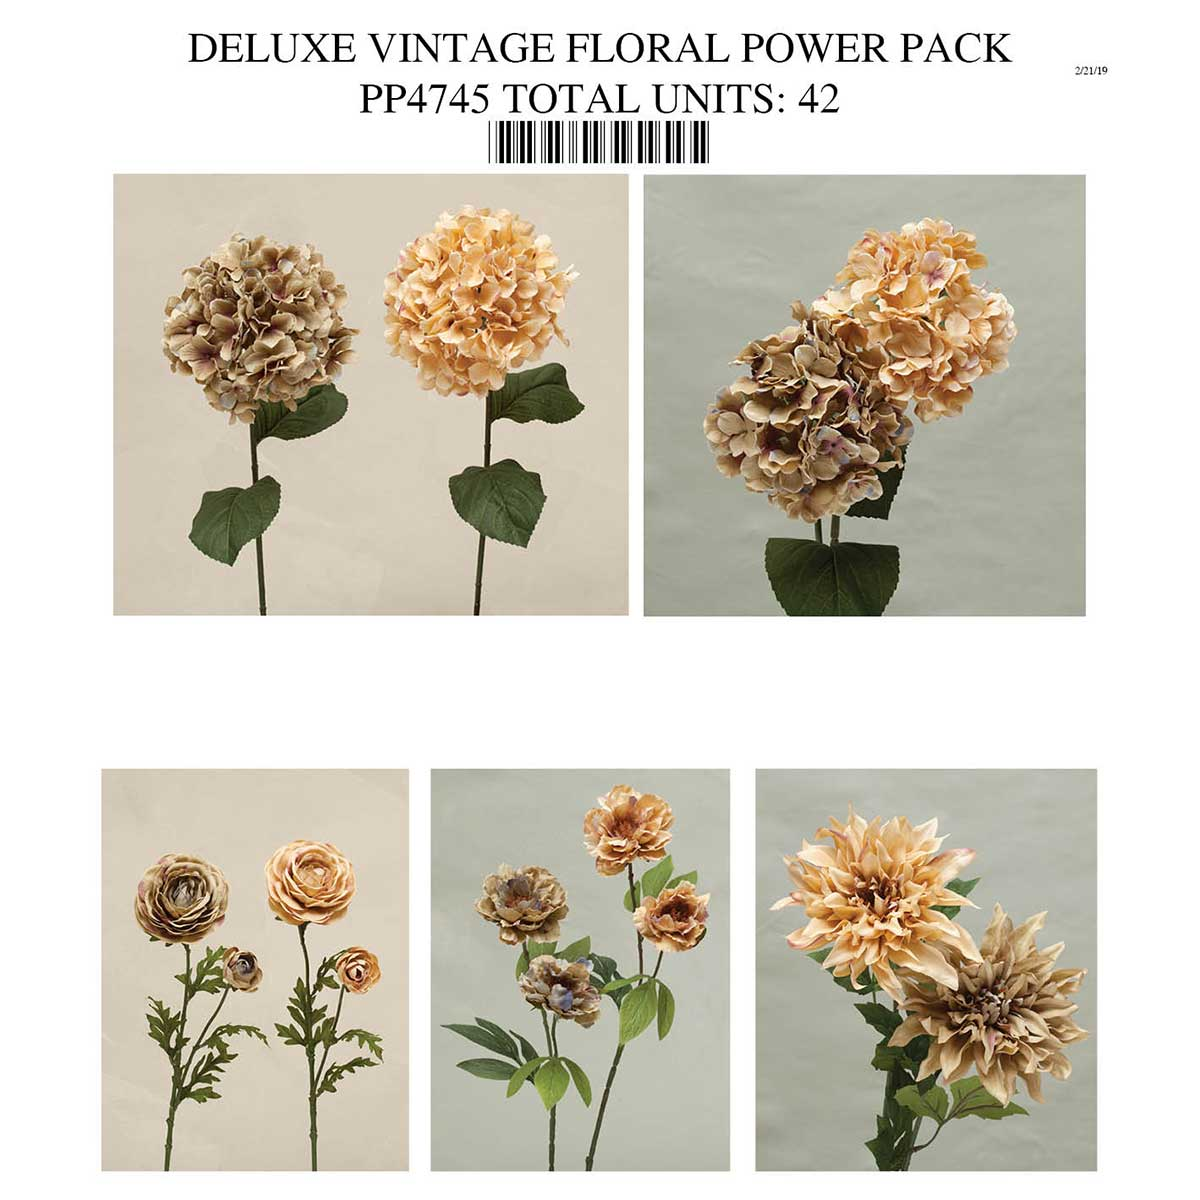 DELUXE VINTAGE FLORAL POWER PACK PP4745